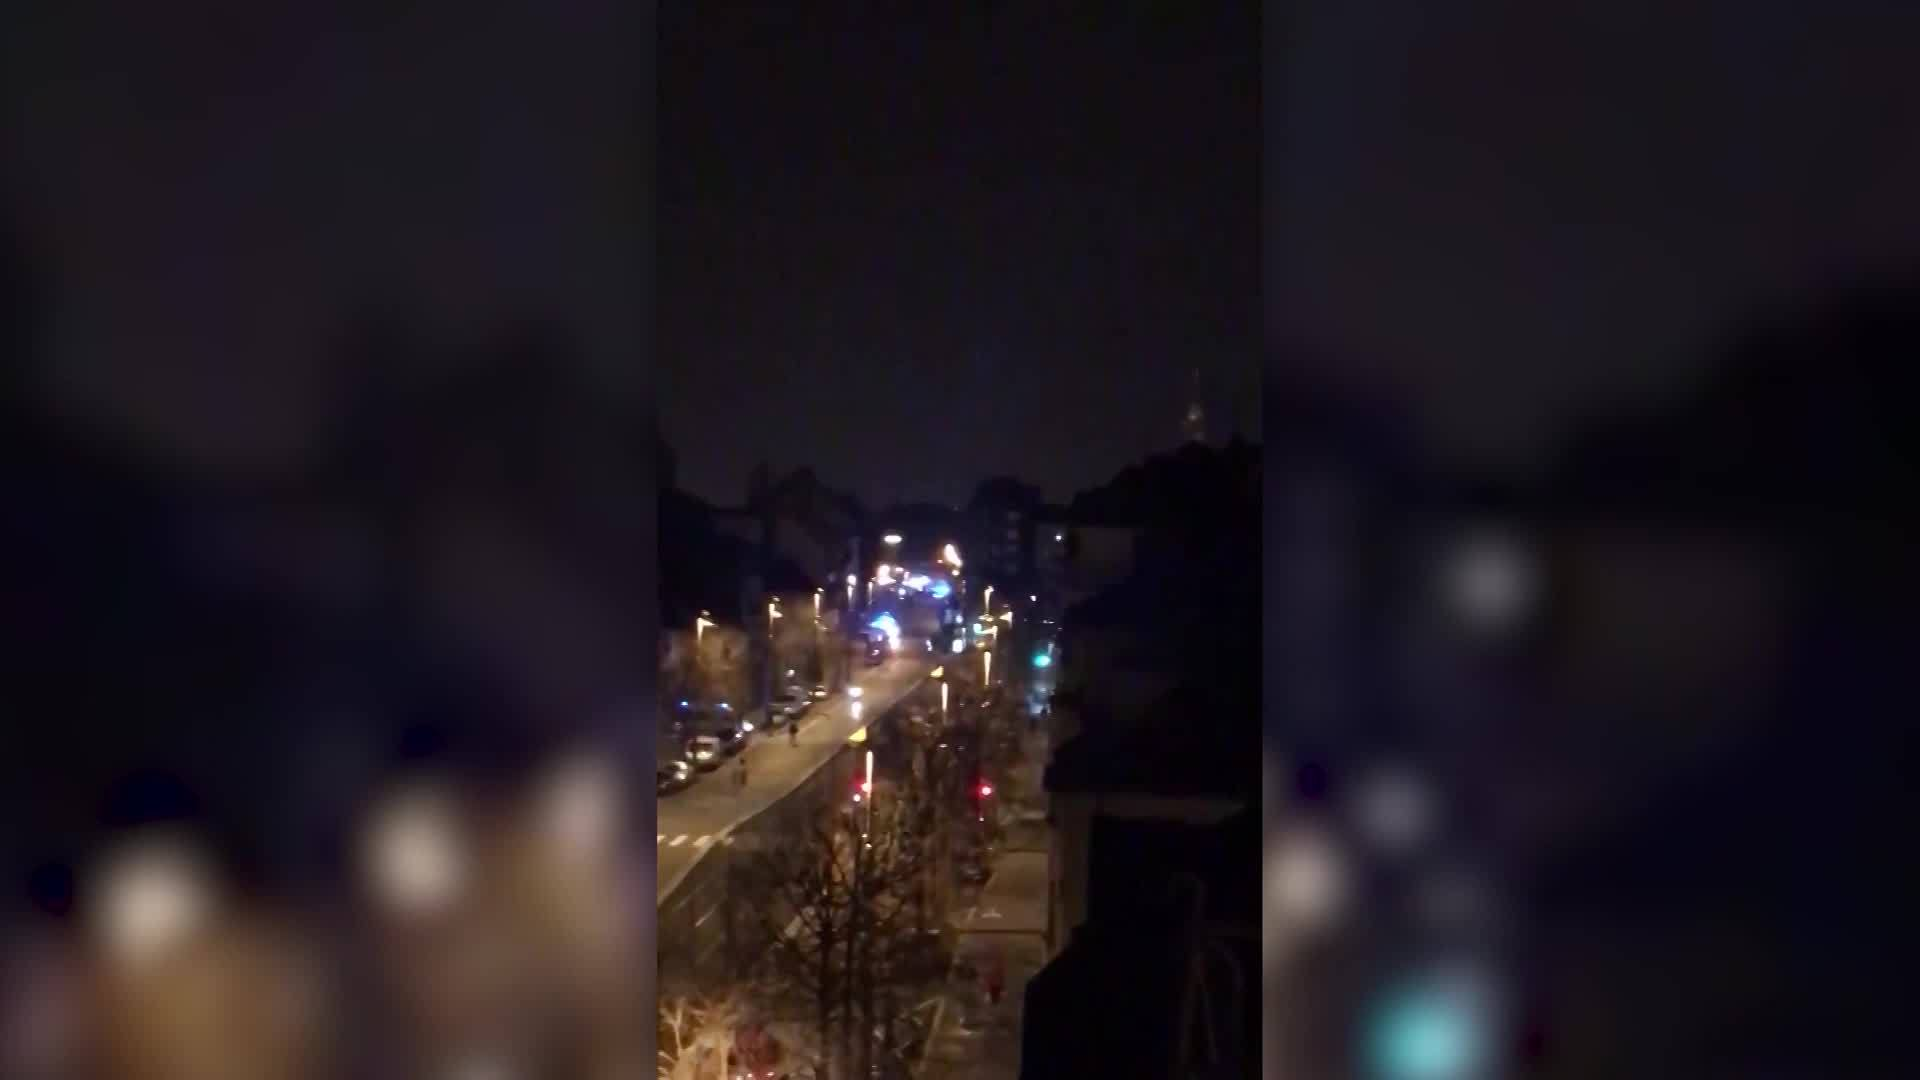 Terror_attack_at_French_Christmas_market_7_20181211234110